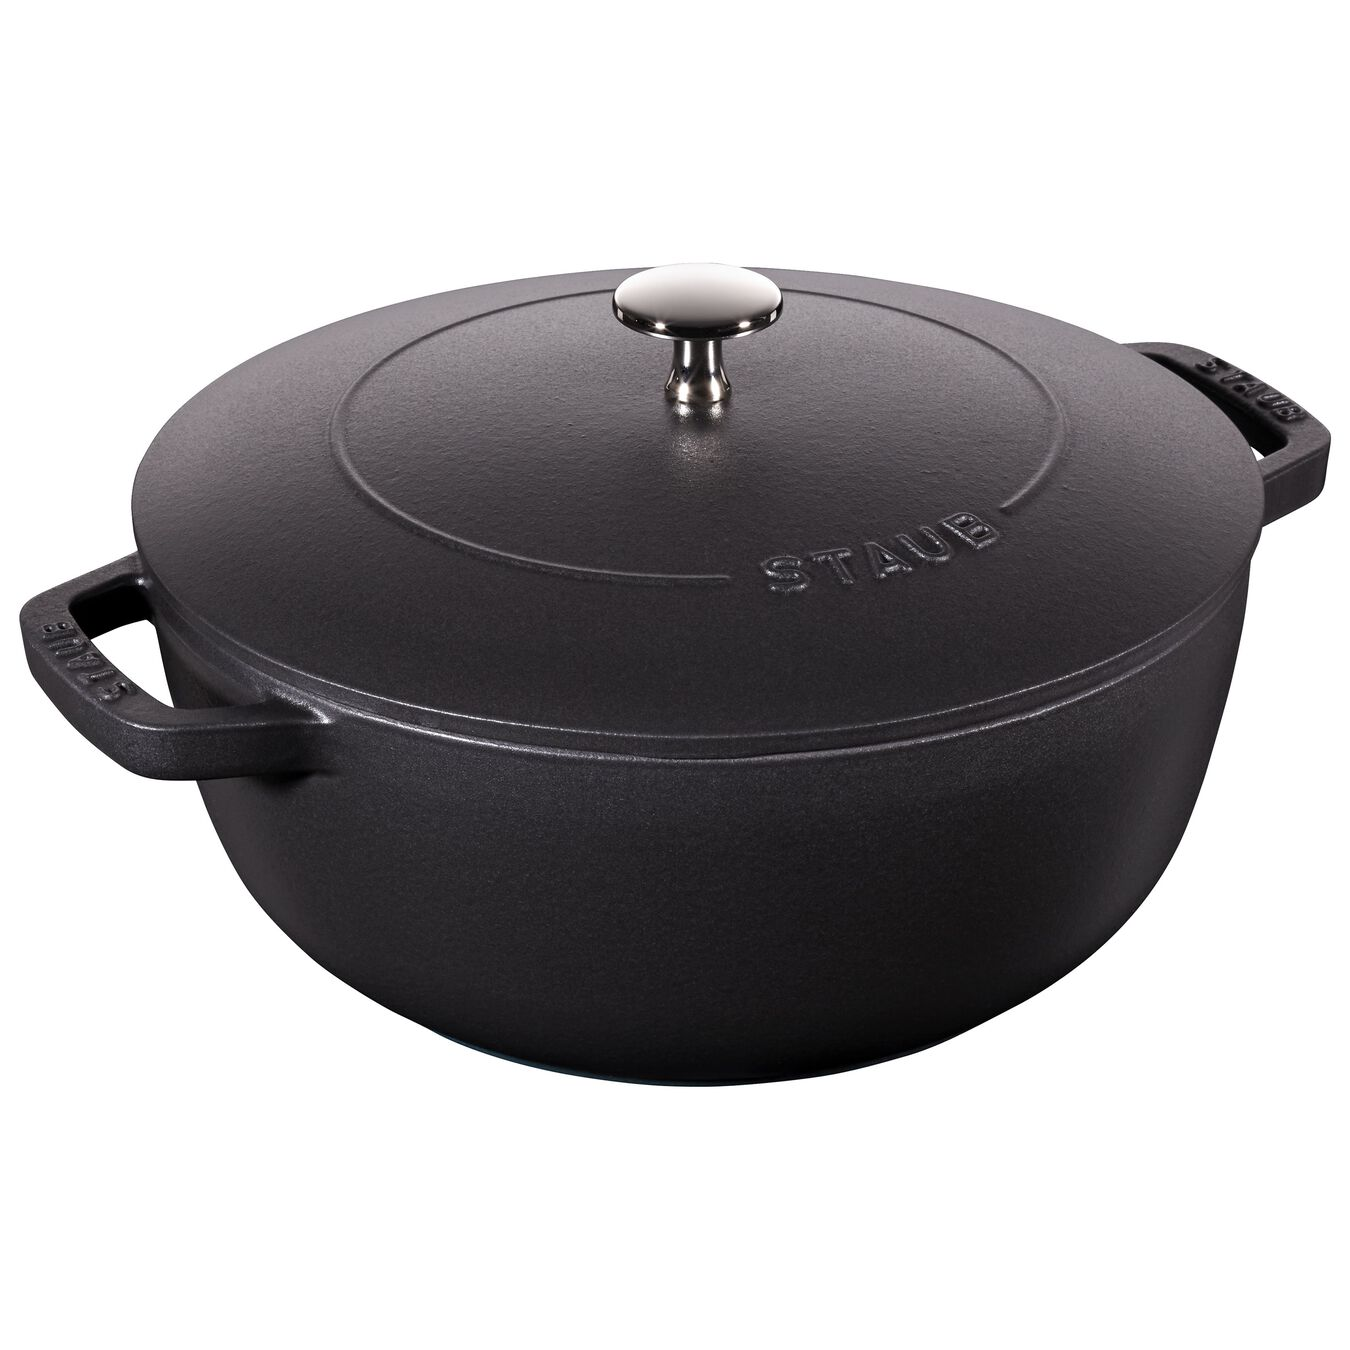 3.75-qt Essential French Oven - Matte Black,,large 1